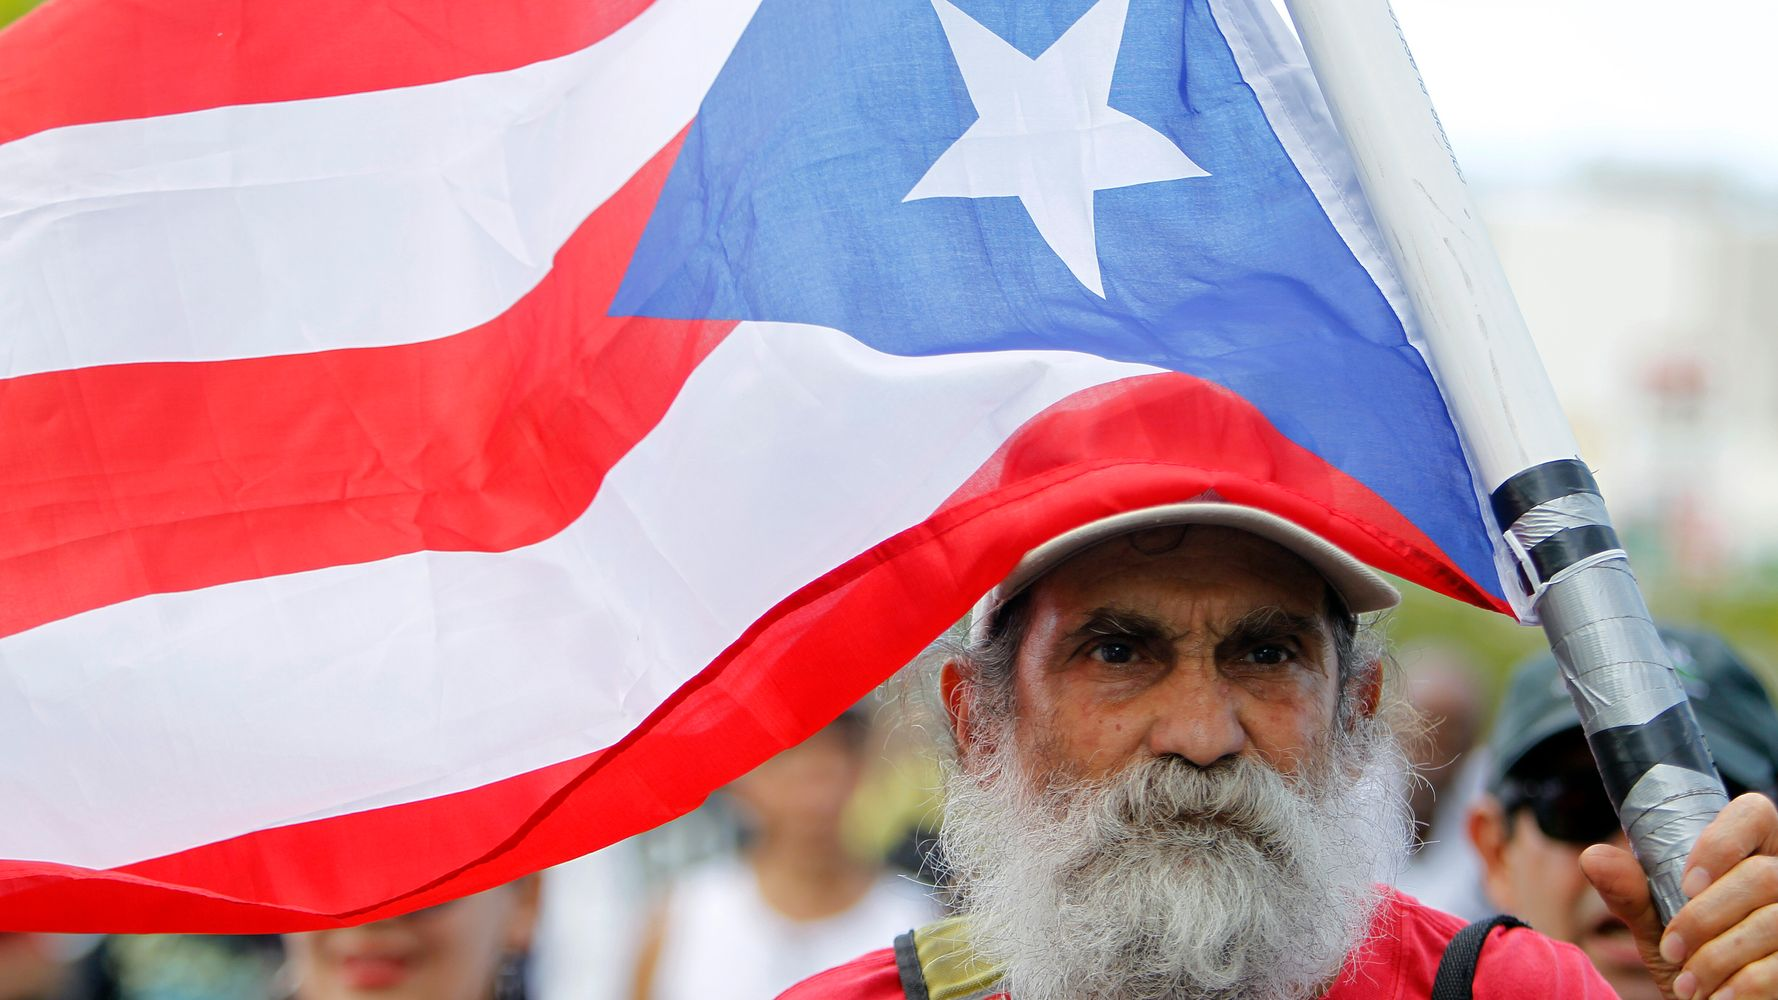 In Puerto Rico, Conservatives Sweep Island-Wide, But Progressives May Score One Big Win